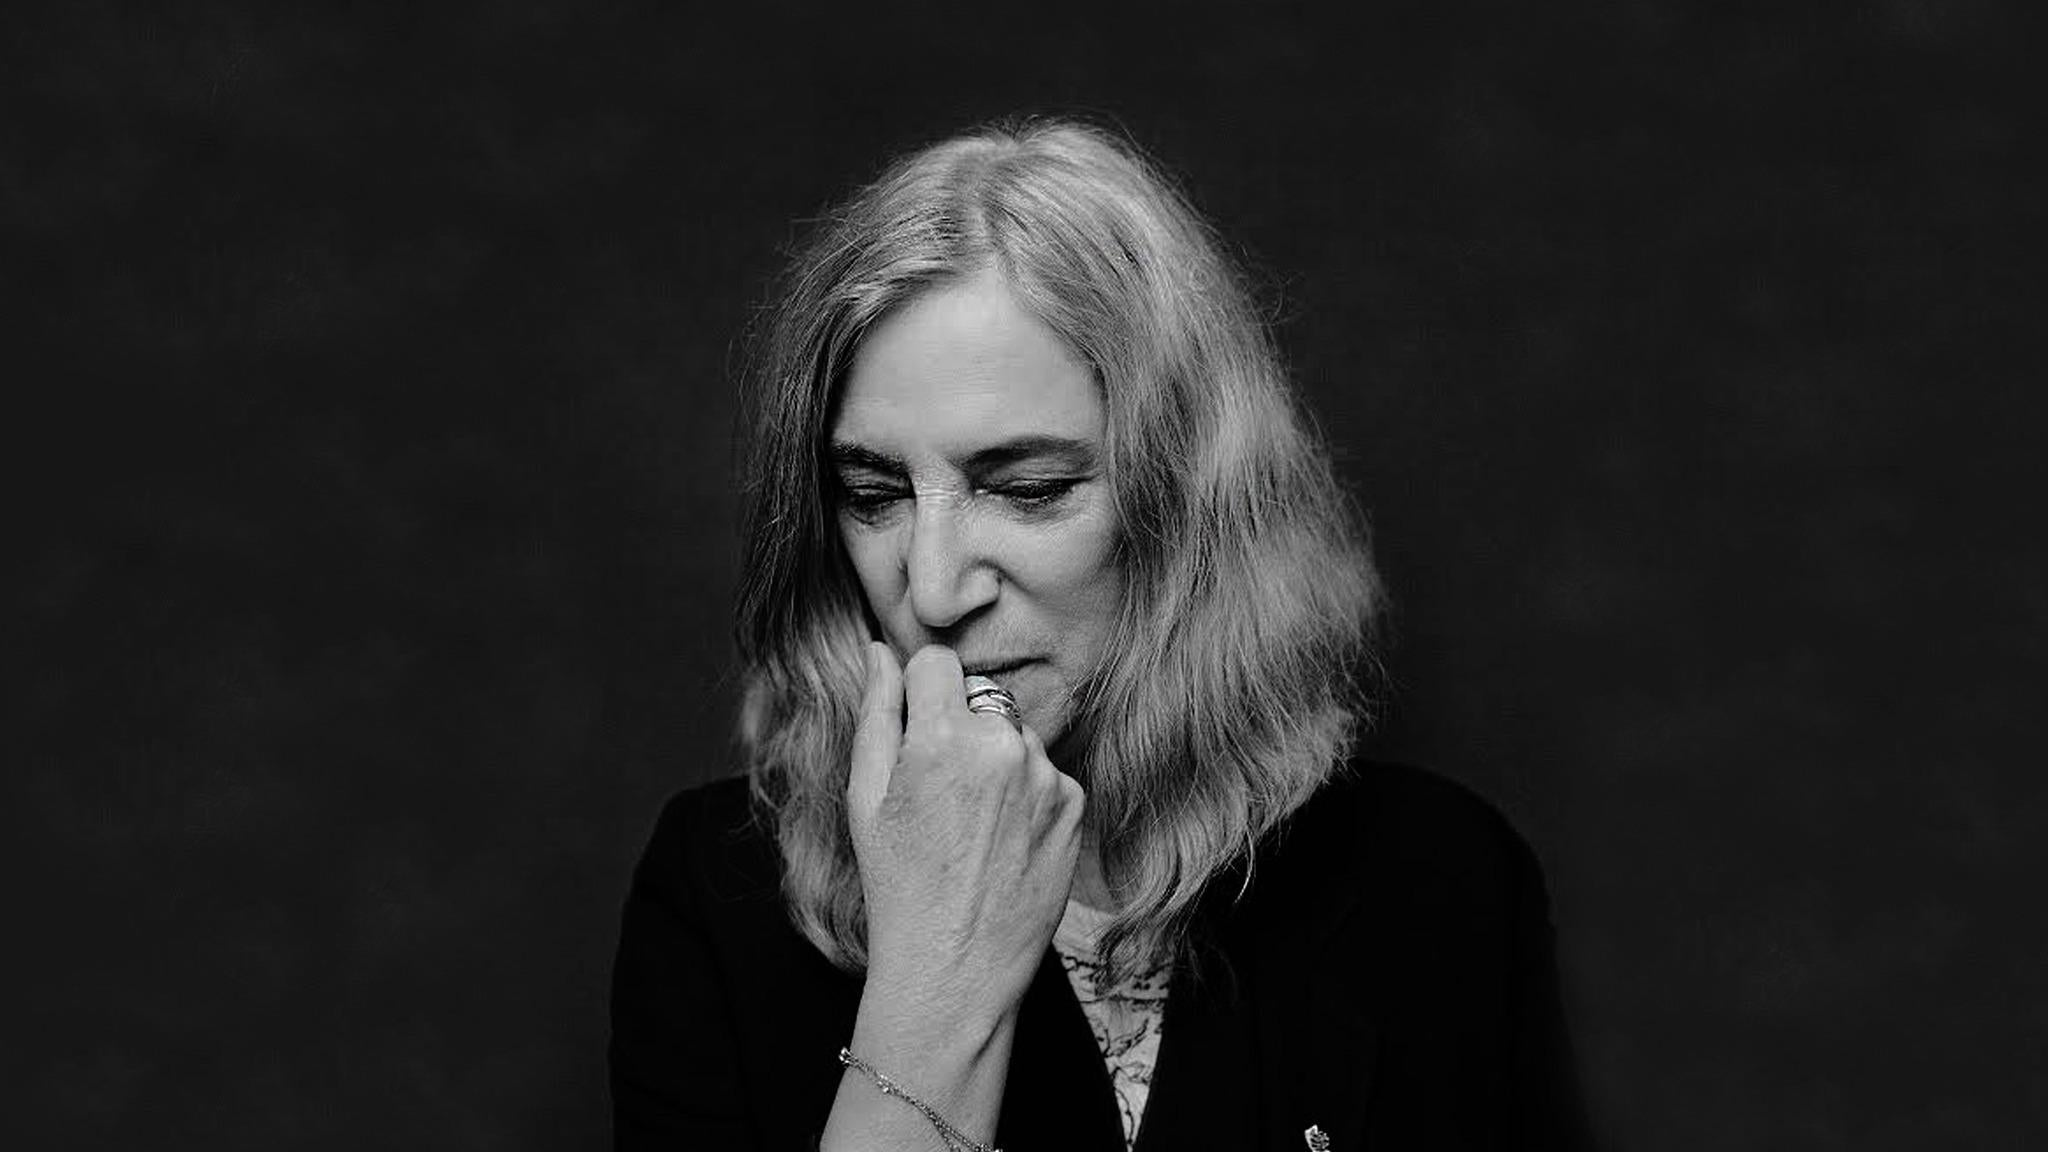 91.3 WYEP Presents Patti Smith and Her Band perform Horses